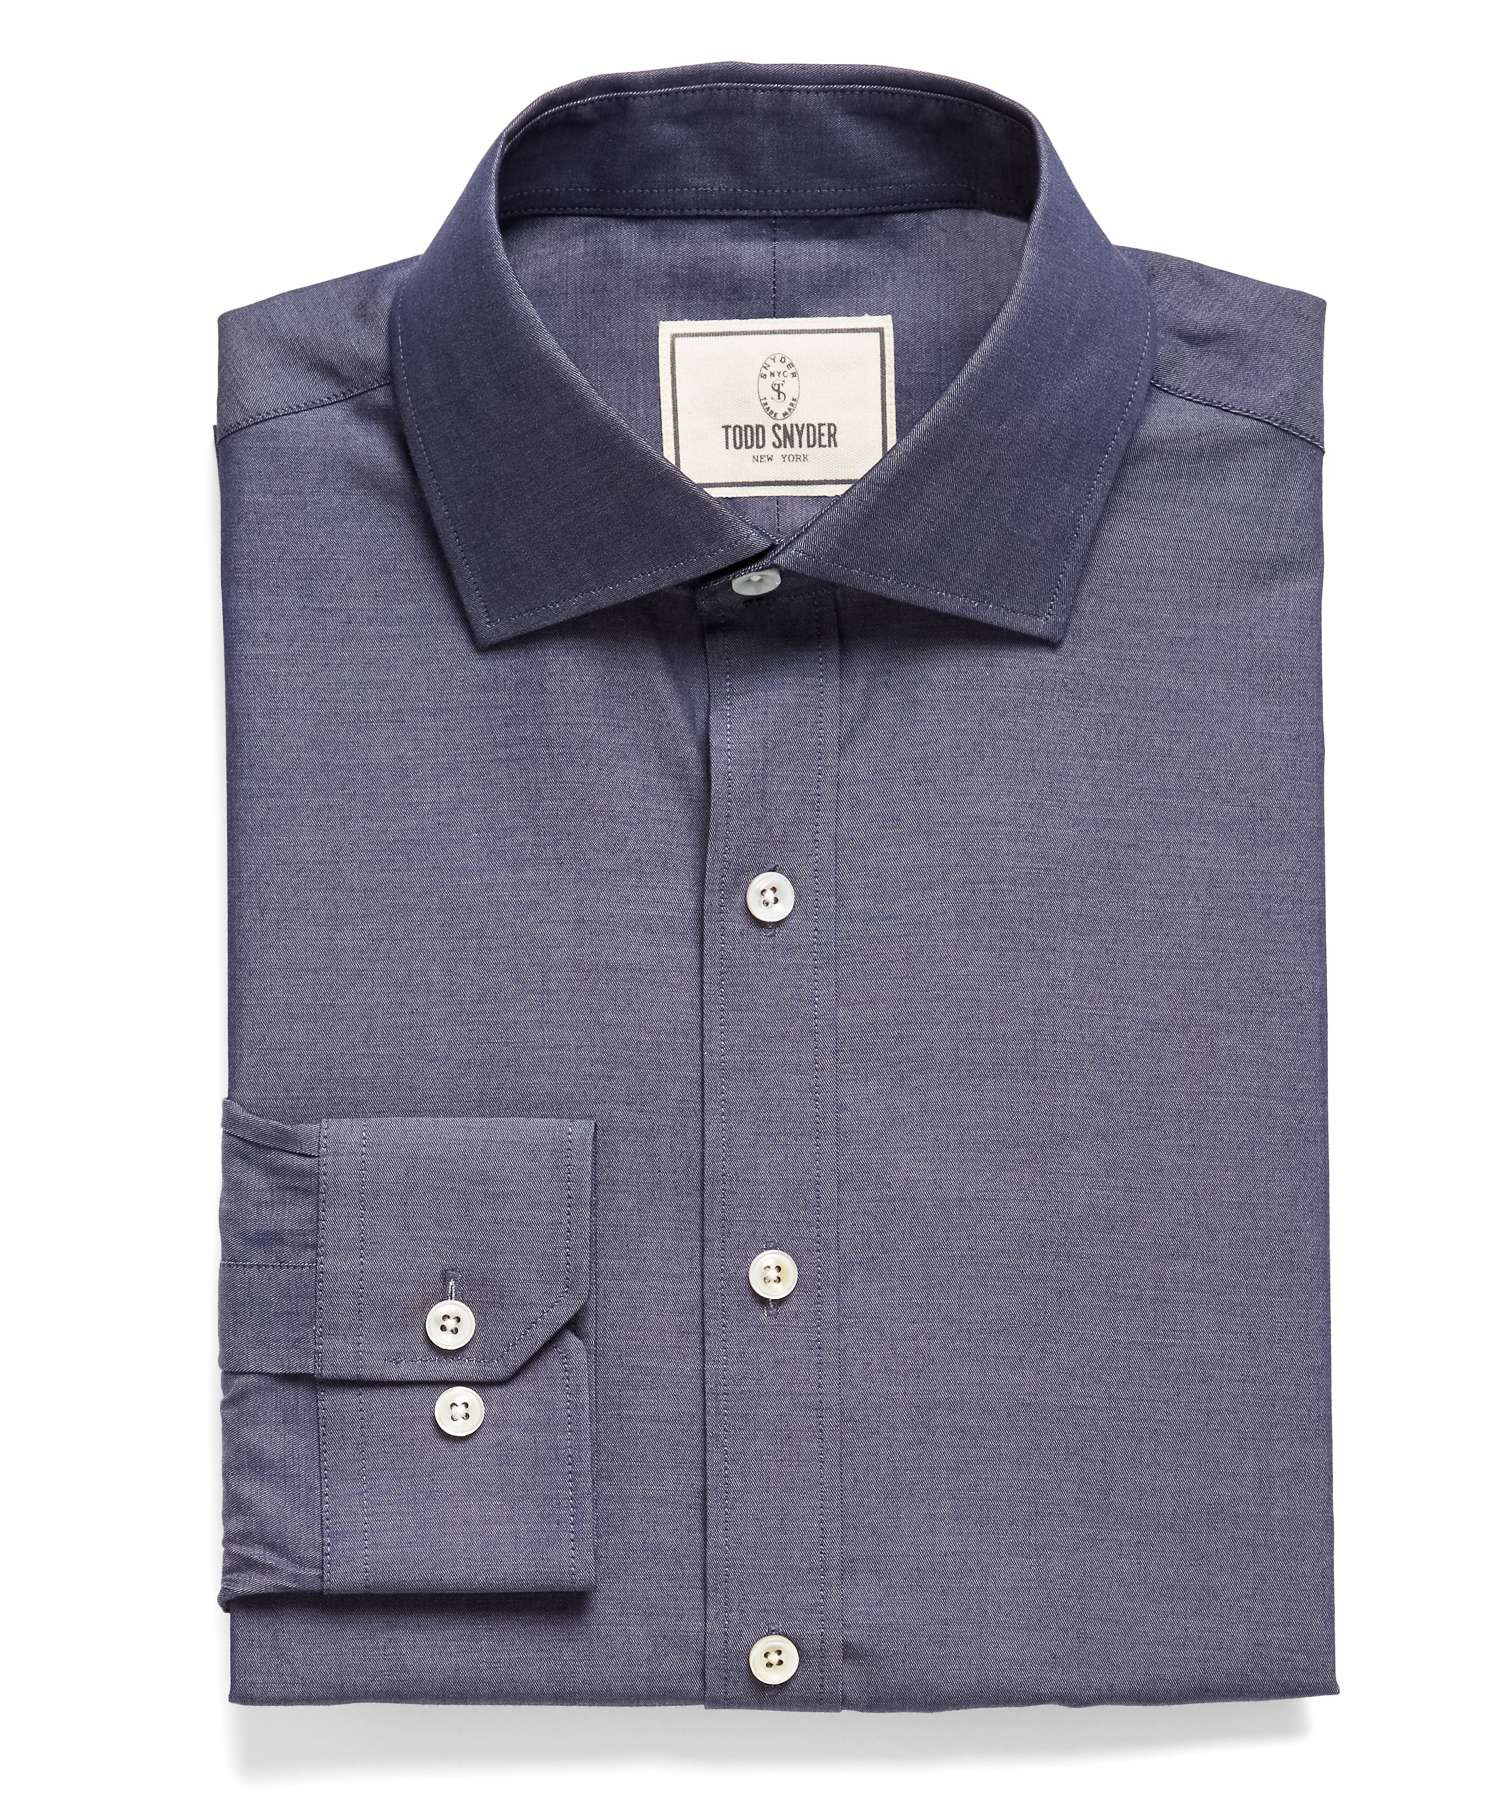 Todd snyder spread collar denim dress shirt in blue for for Mens wide collar dress shirts